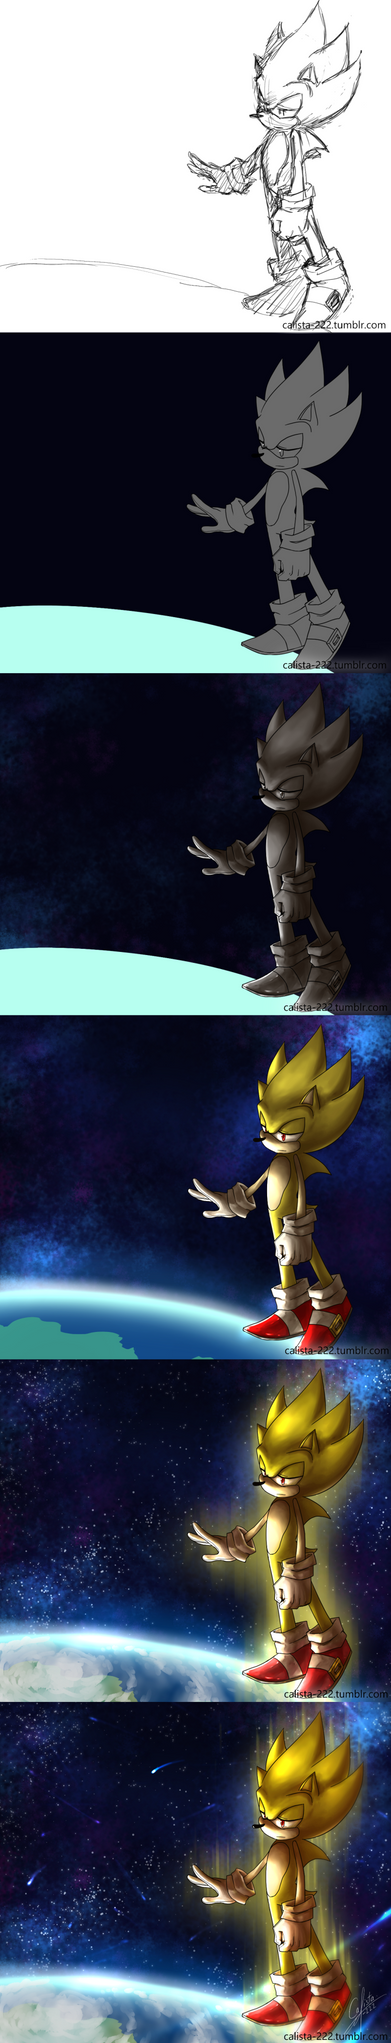 Super sonic coloring process by Calista-222